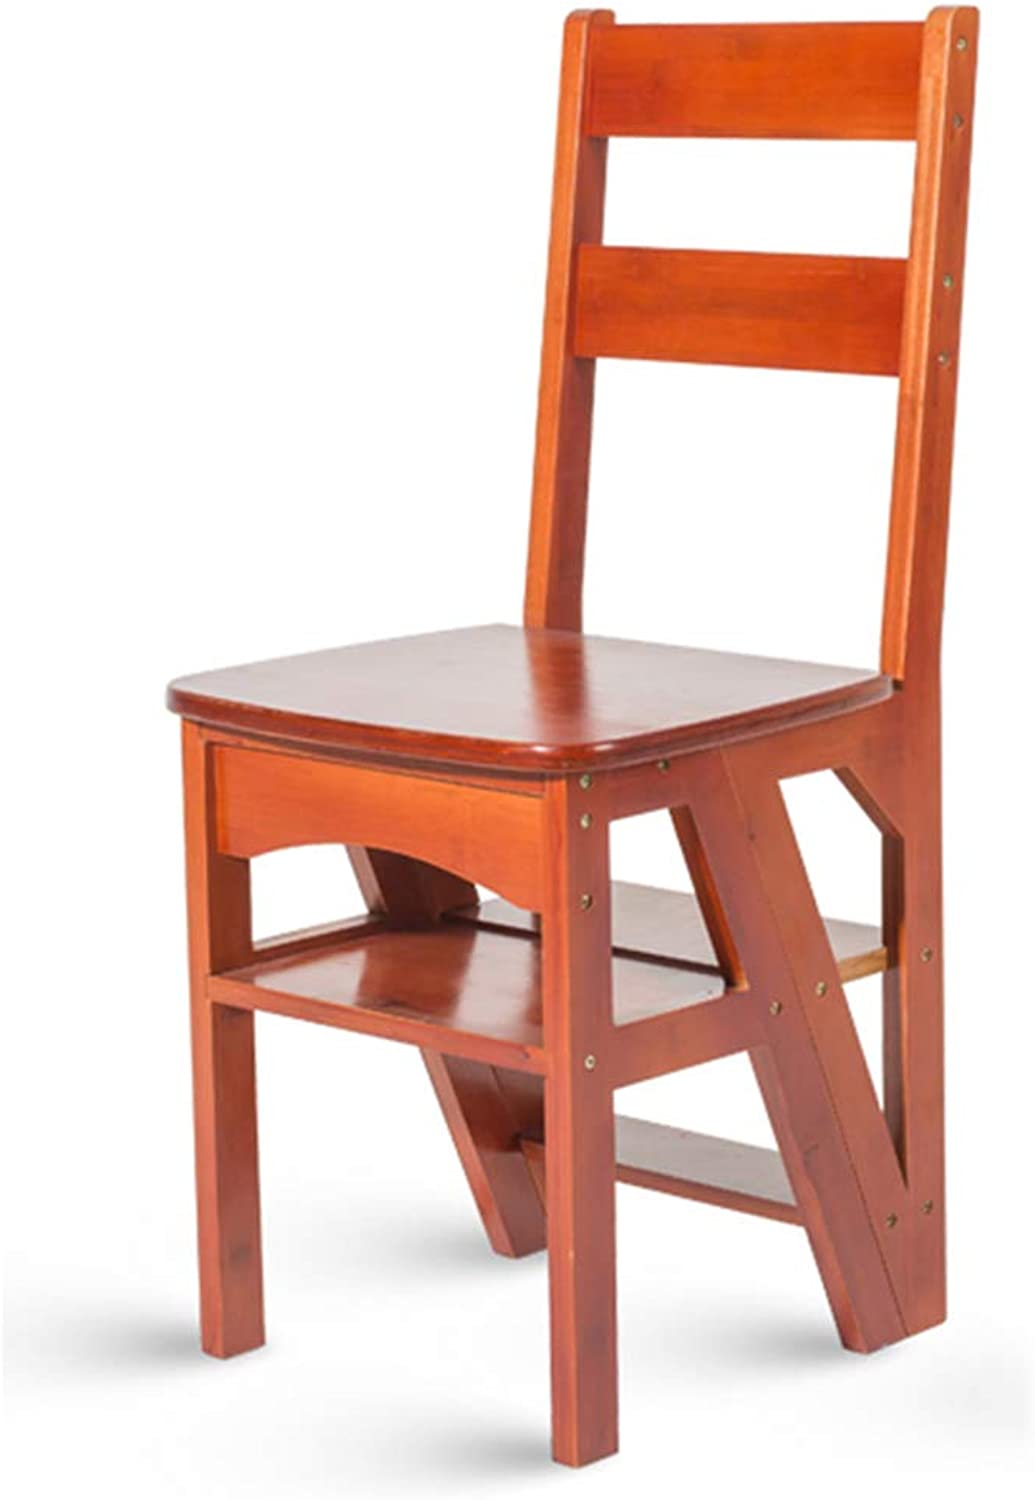 YD Step Stool Wood Folding Step Stool for Adults Kids Kitchen Wooden Ladders Small Foot Stools Indoor Folding Stepladder Portable shoes Bench Flower Rack Storage Shelf  &